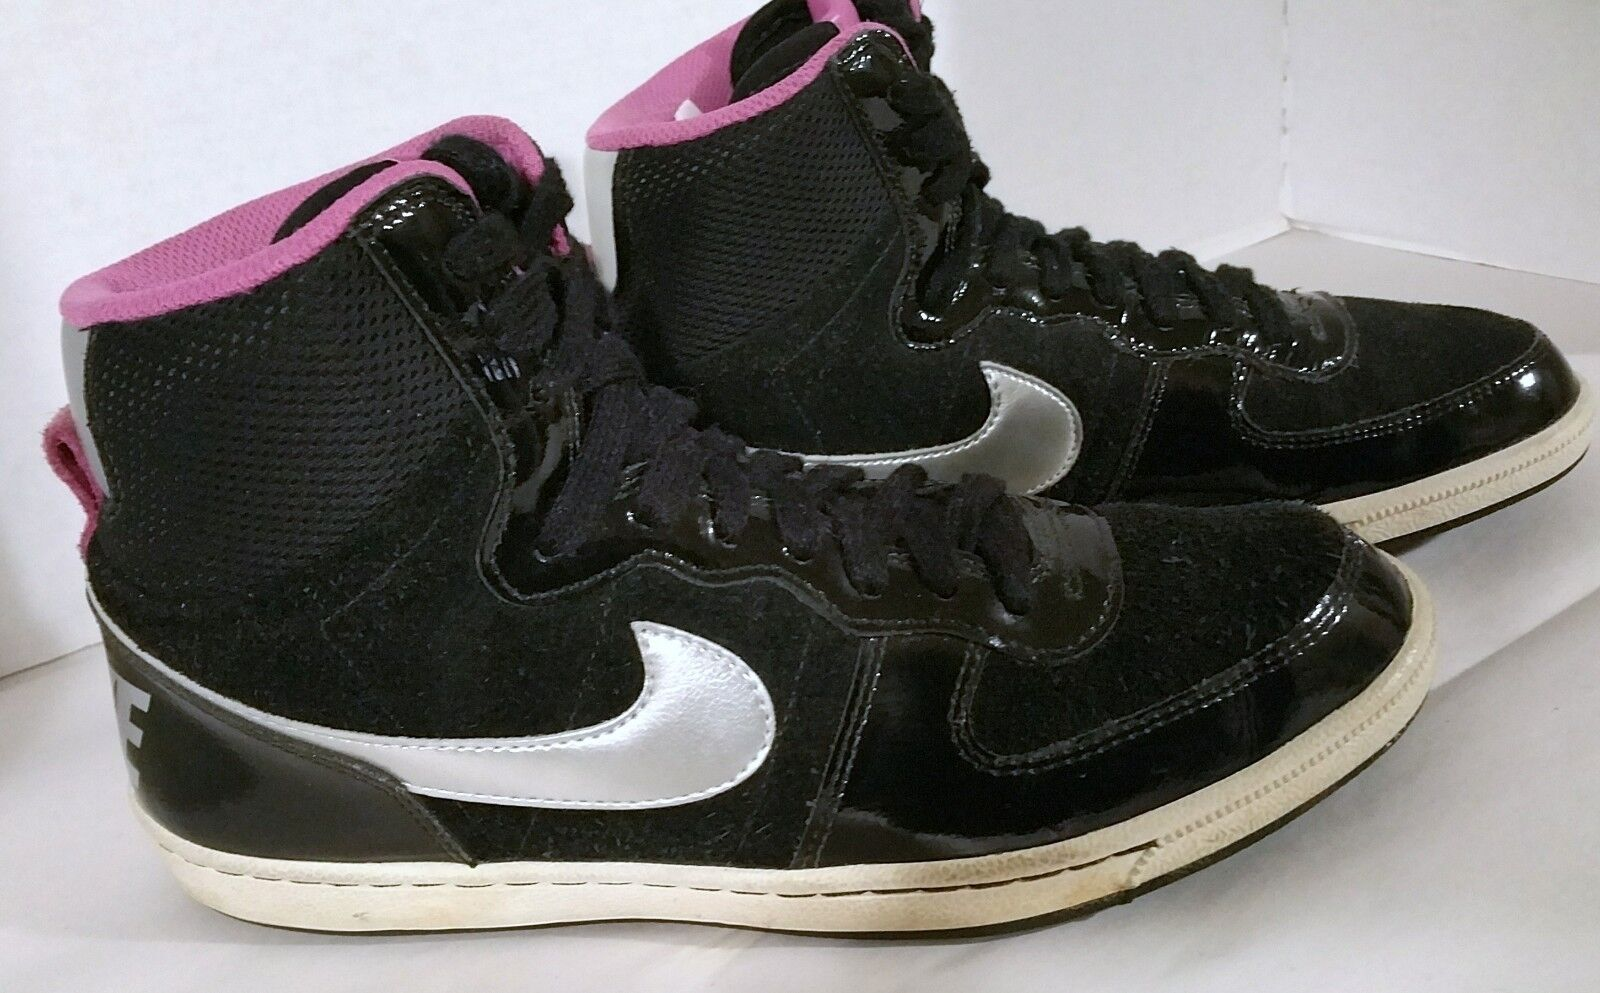 2013 Women's, Nike Terminator Lite Hi, 599435-002, US 8 Eur 39 The most popular shoes for men and women